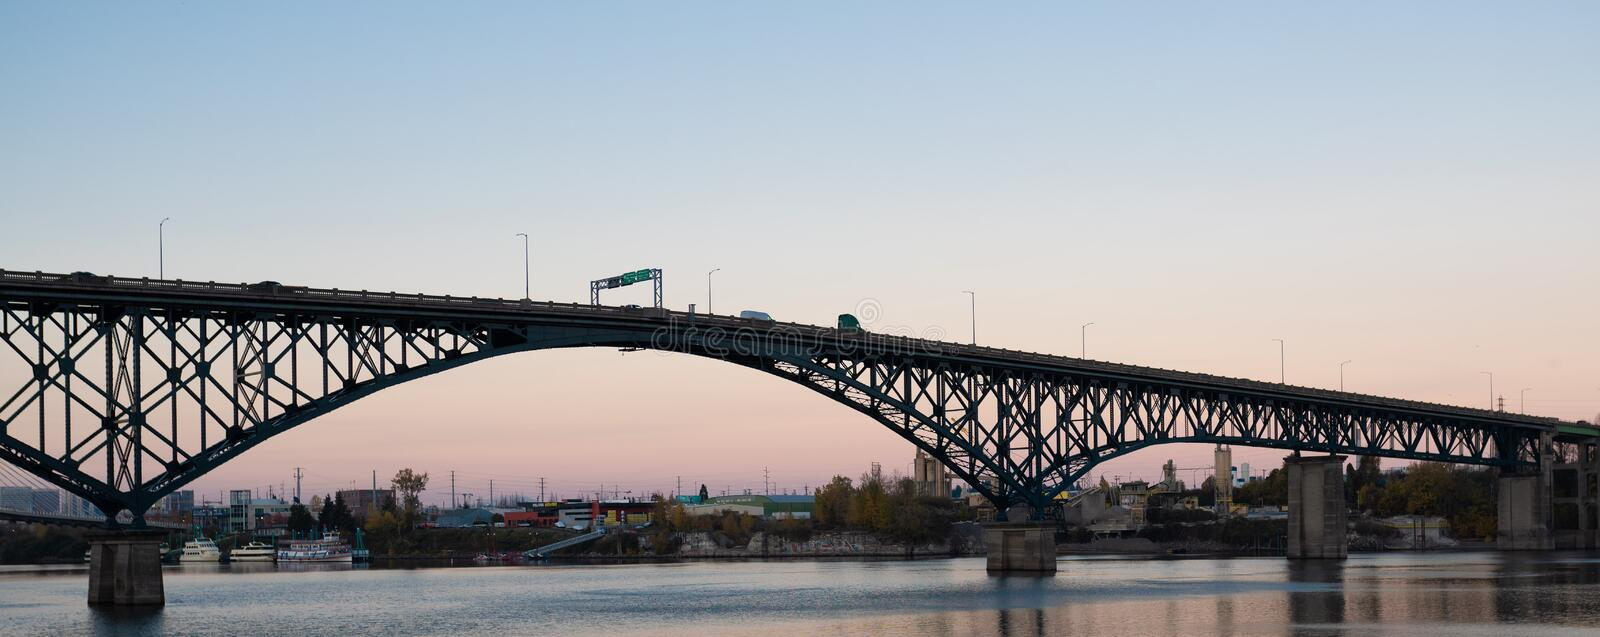 Ross Island bridge in the evening royalty free stock images